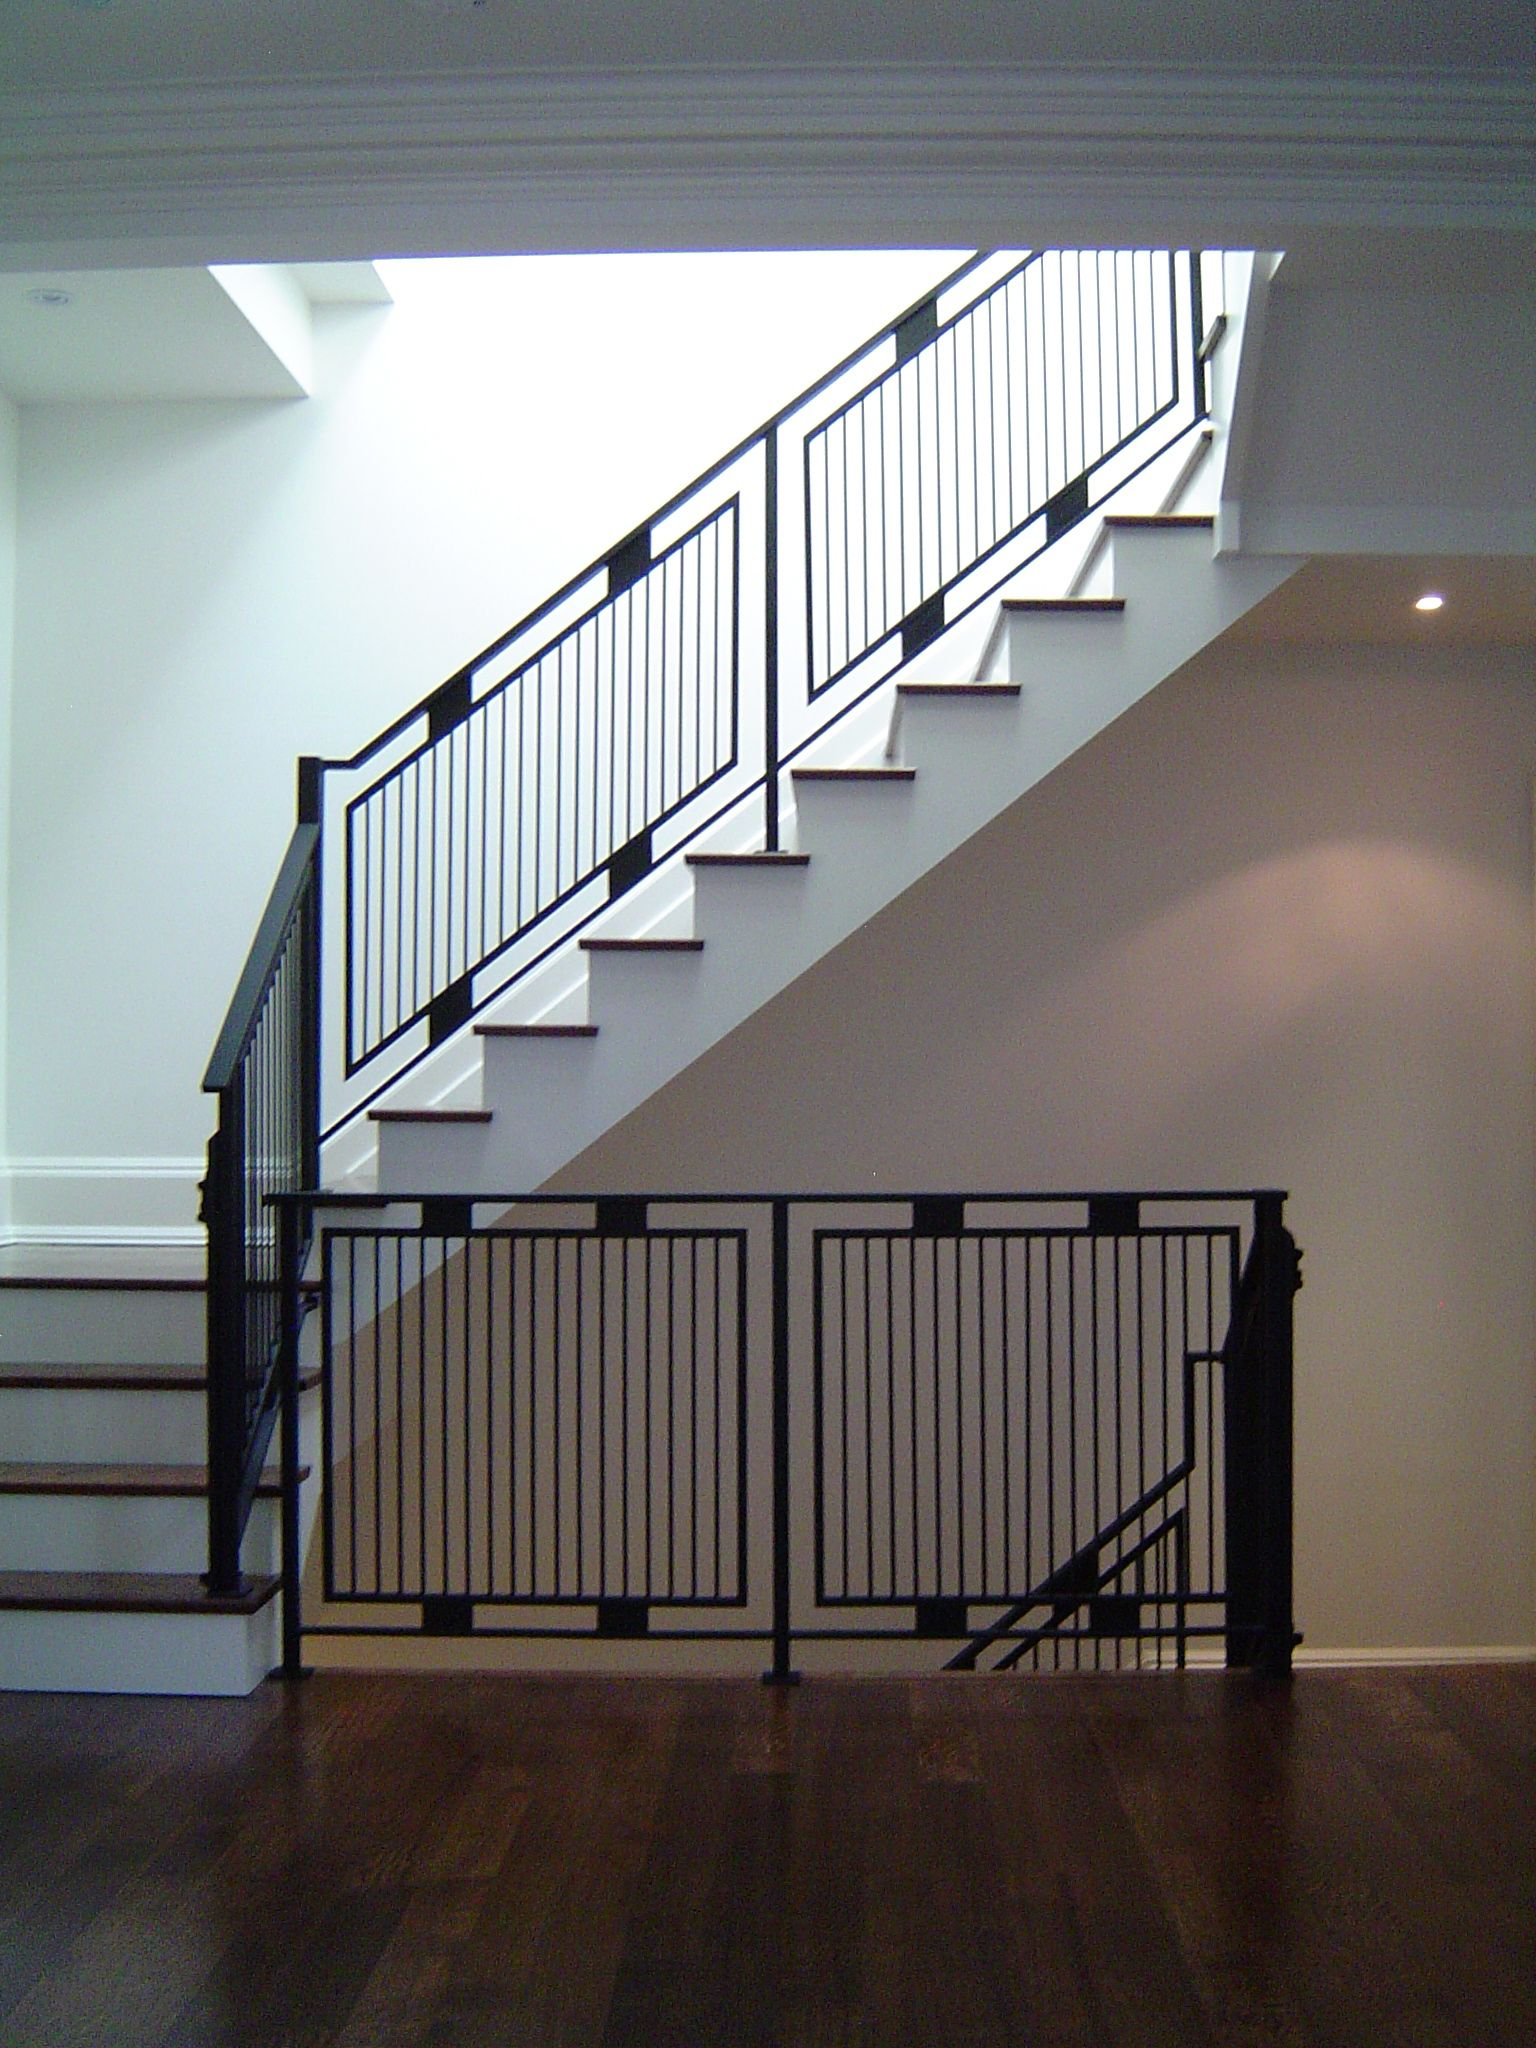 Light Weight Steel Tube Railings. From The Basement To The